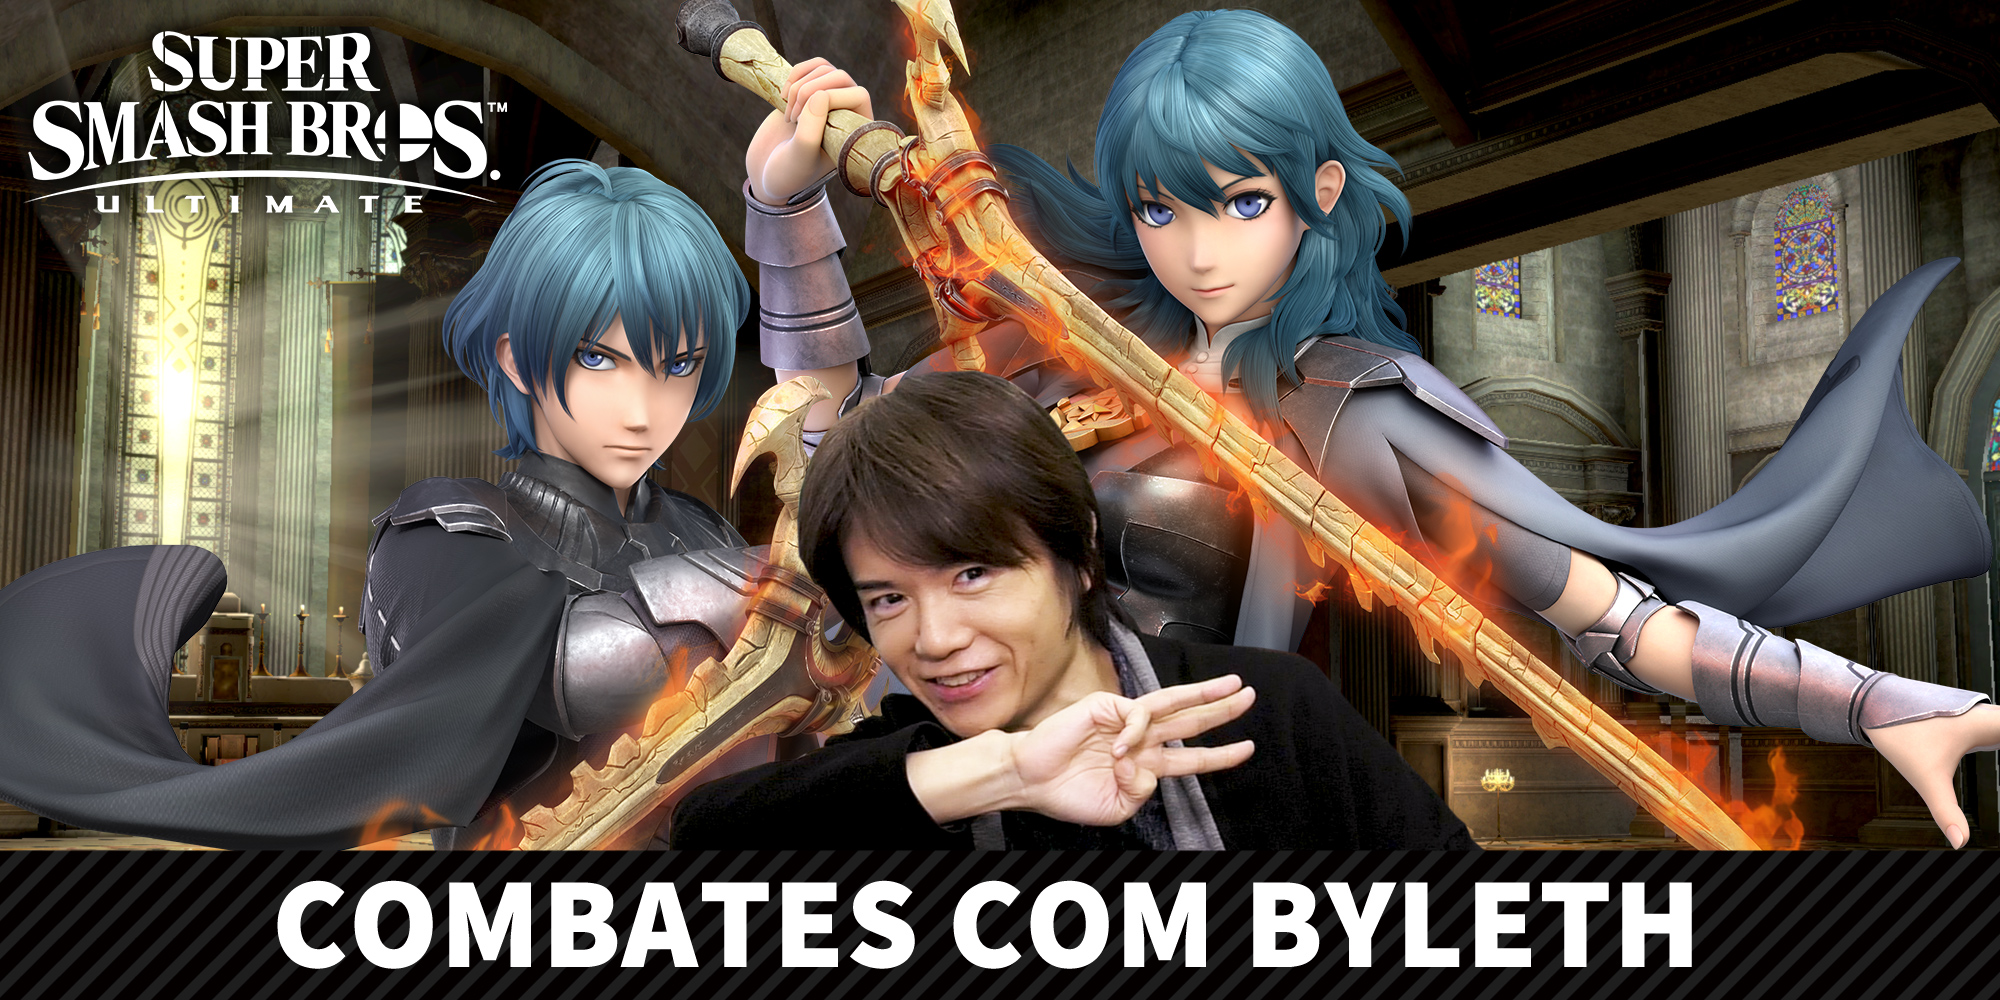 Byleth, de Fire Emblem: Three Houses, chega a Super Smash Bros. Ultimate no dia 29 de janeiro!